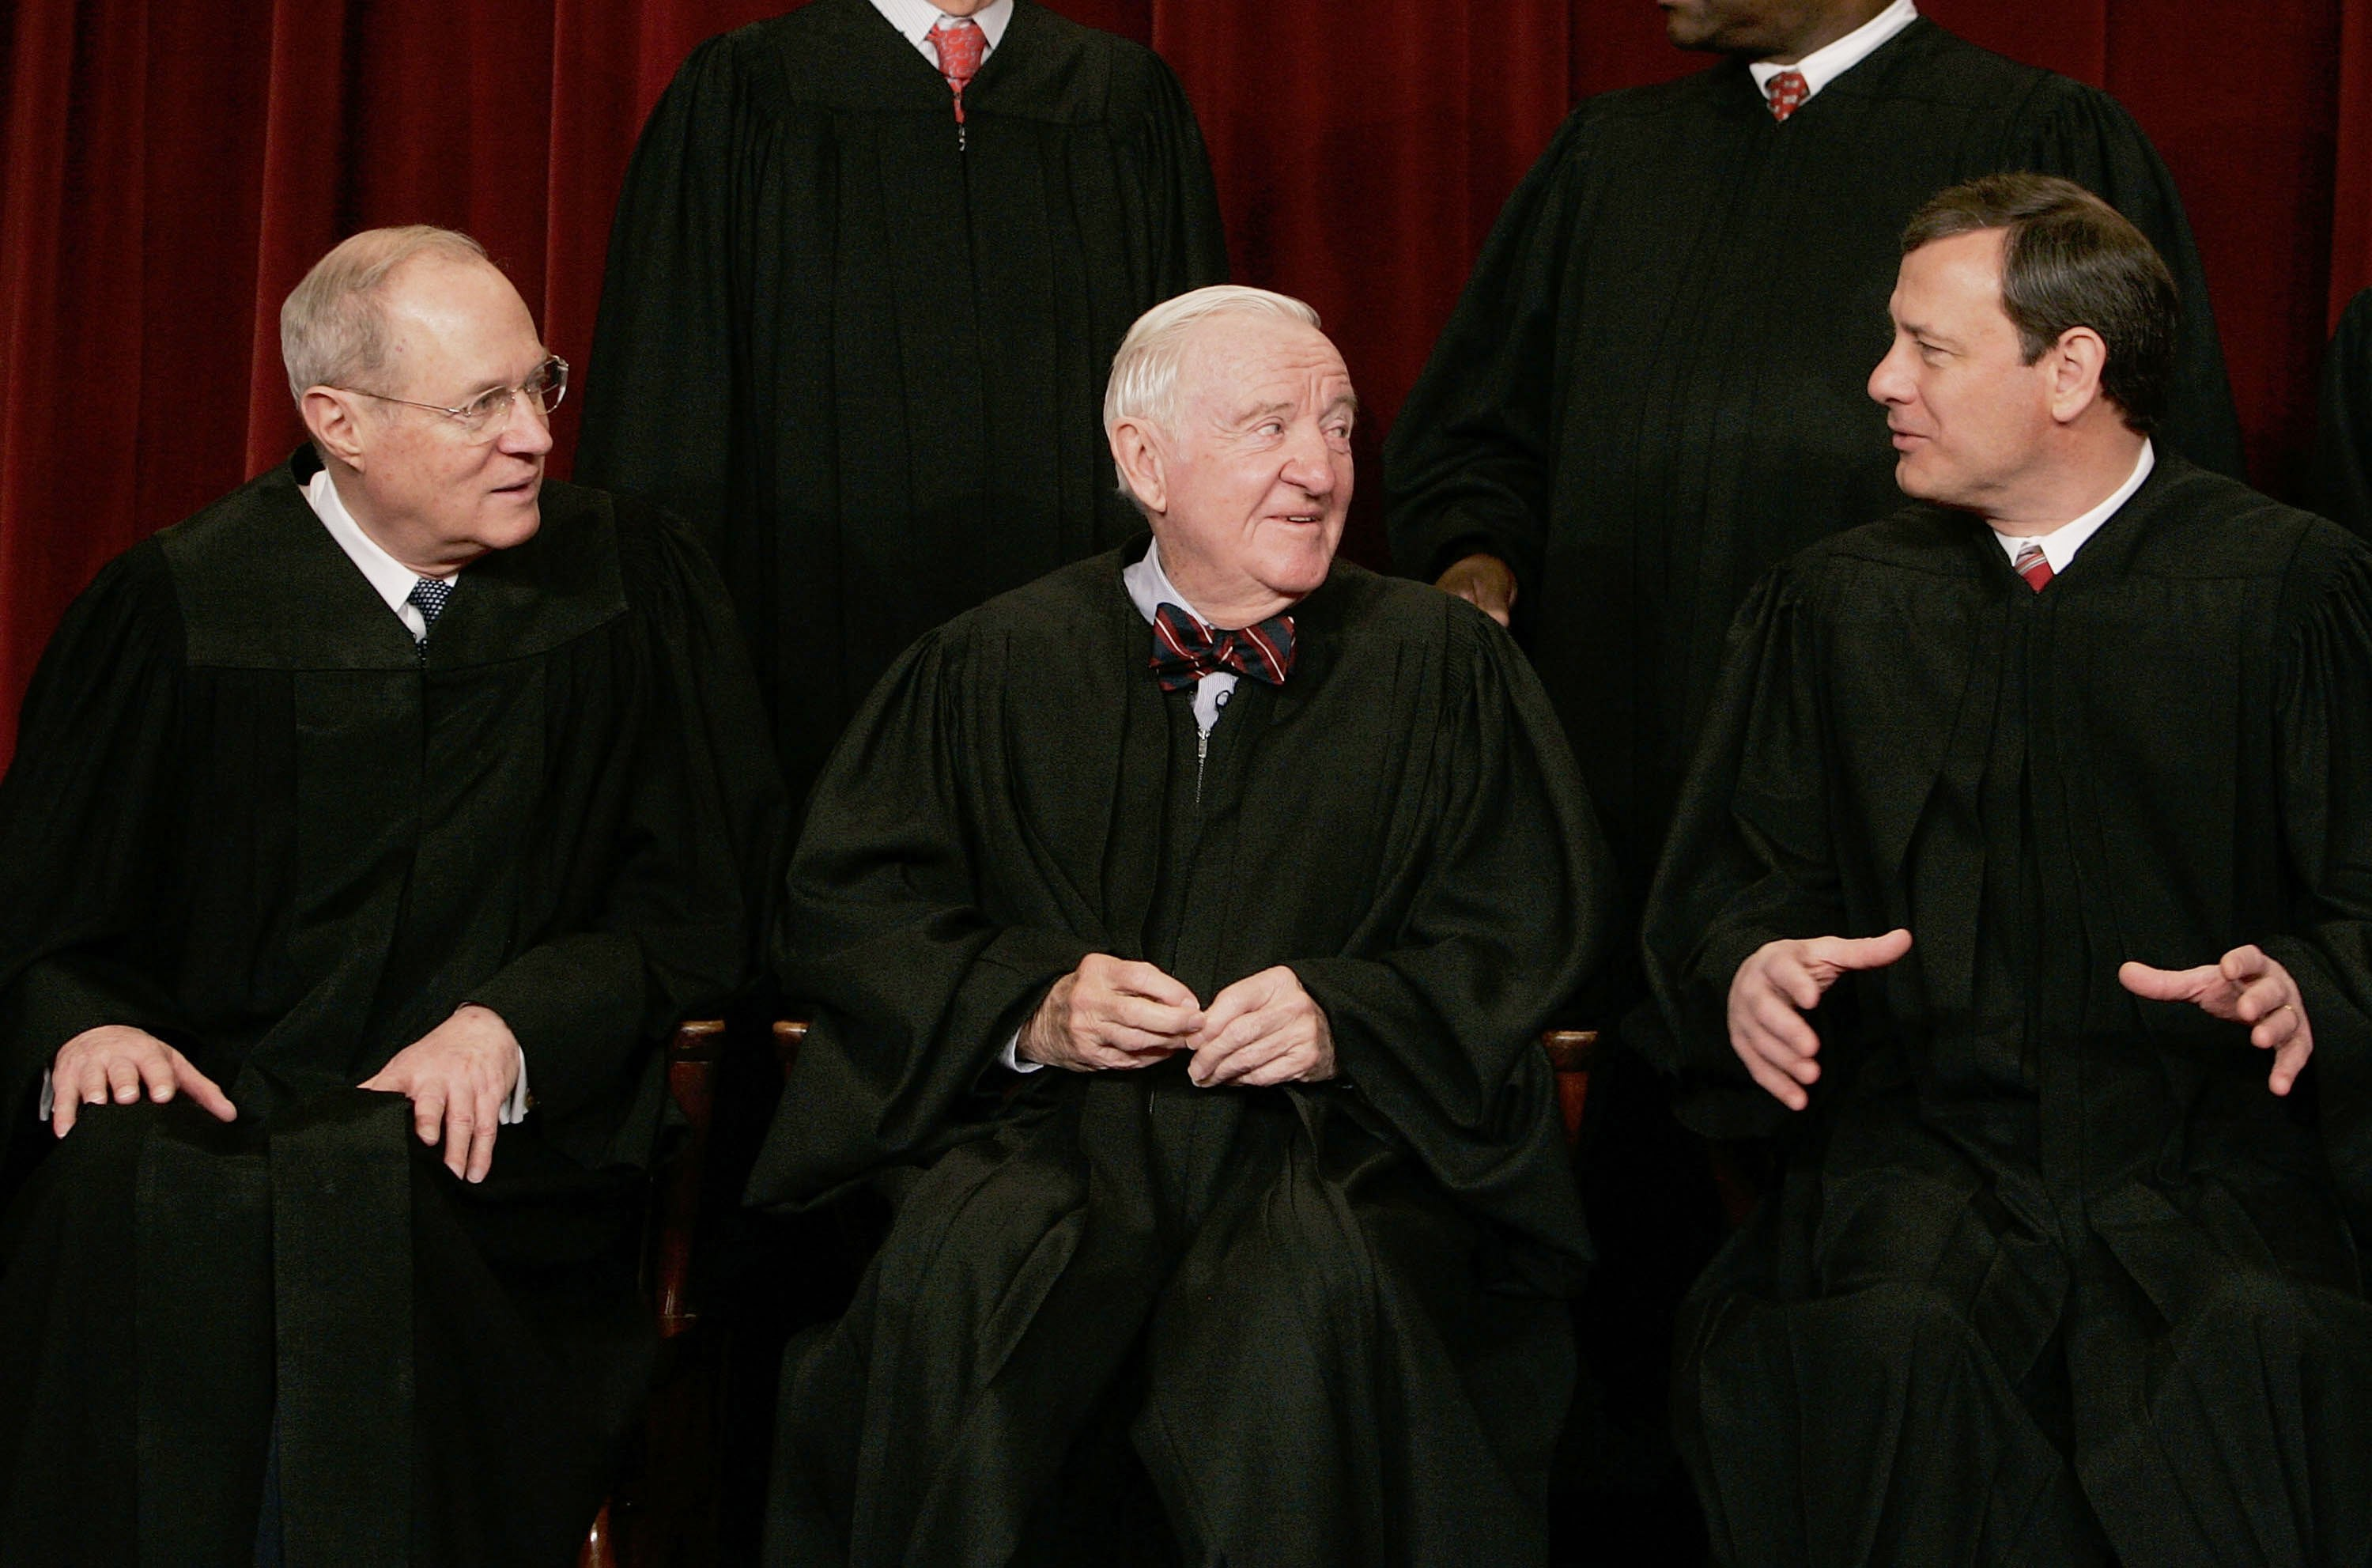 (L to R) Justices Anthony Kennedy, John Paul Stevens, and Chief Justice John Roberts chat during a photo session on March 3, 2006. (Mark Wilson/Getty Images)